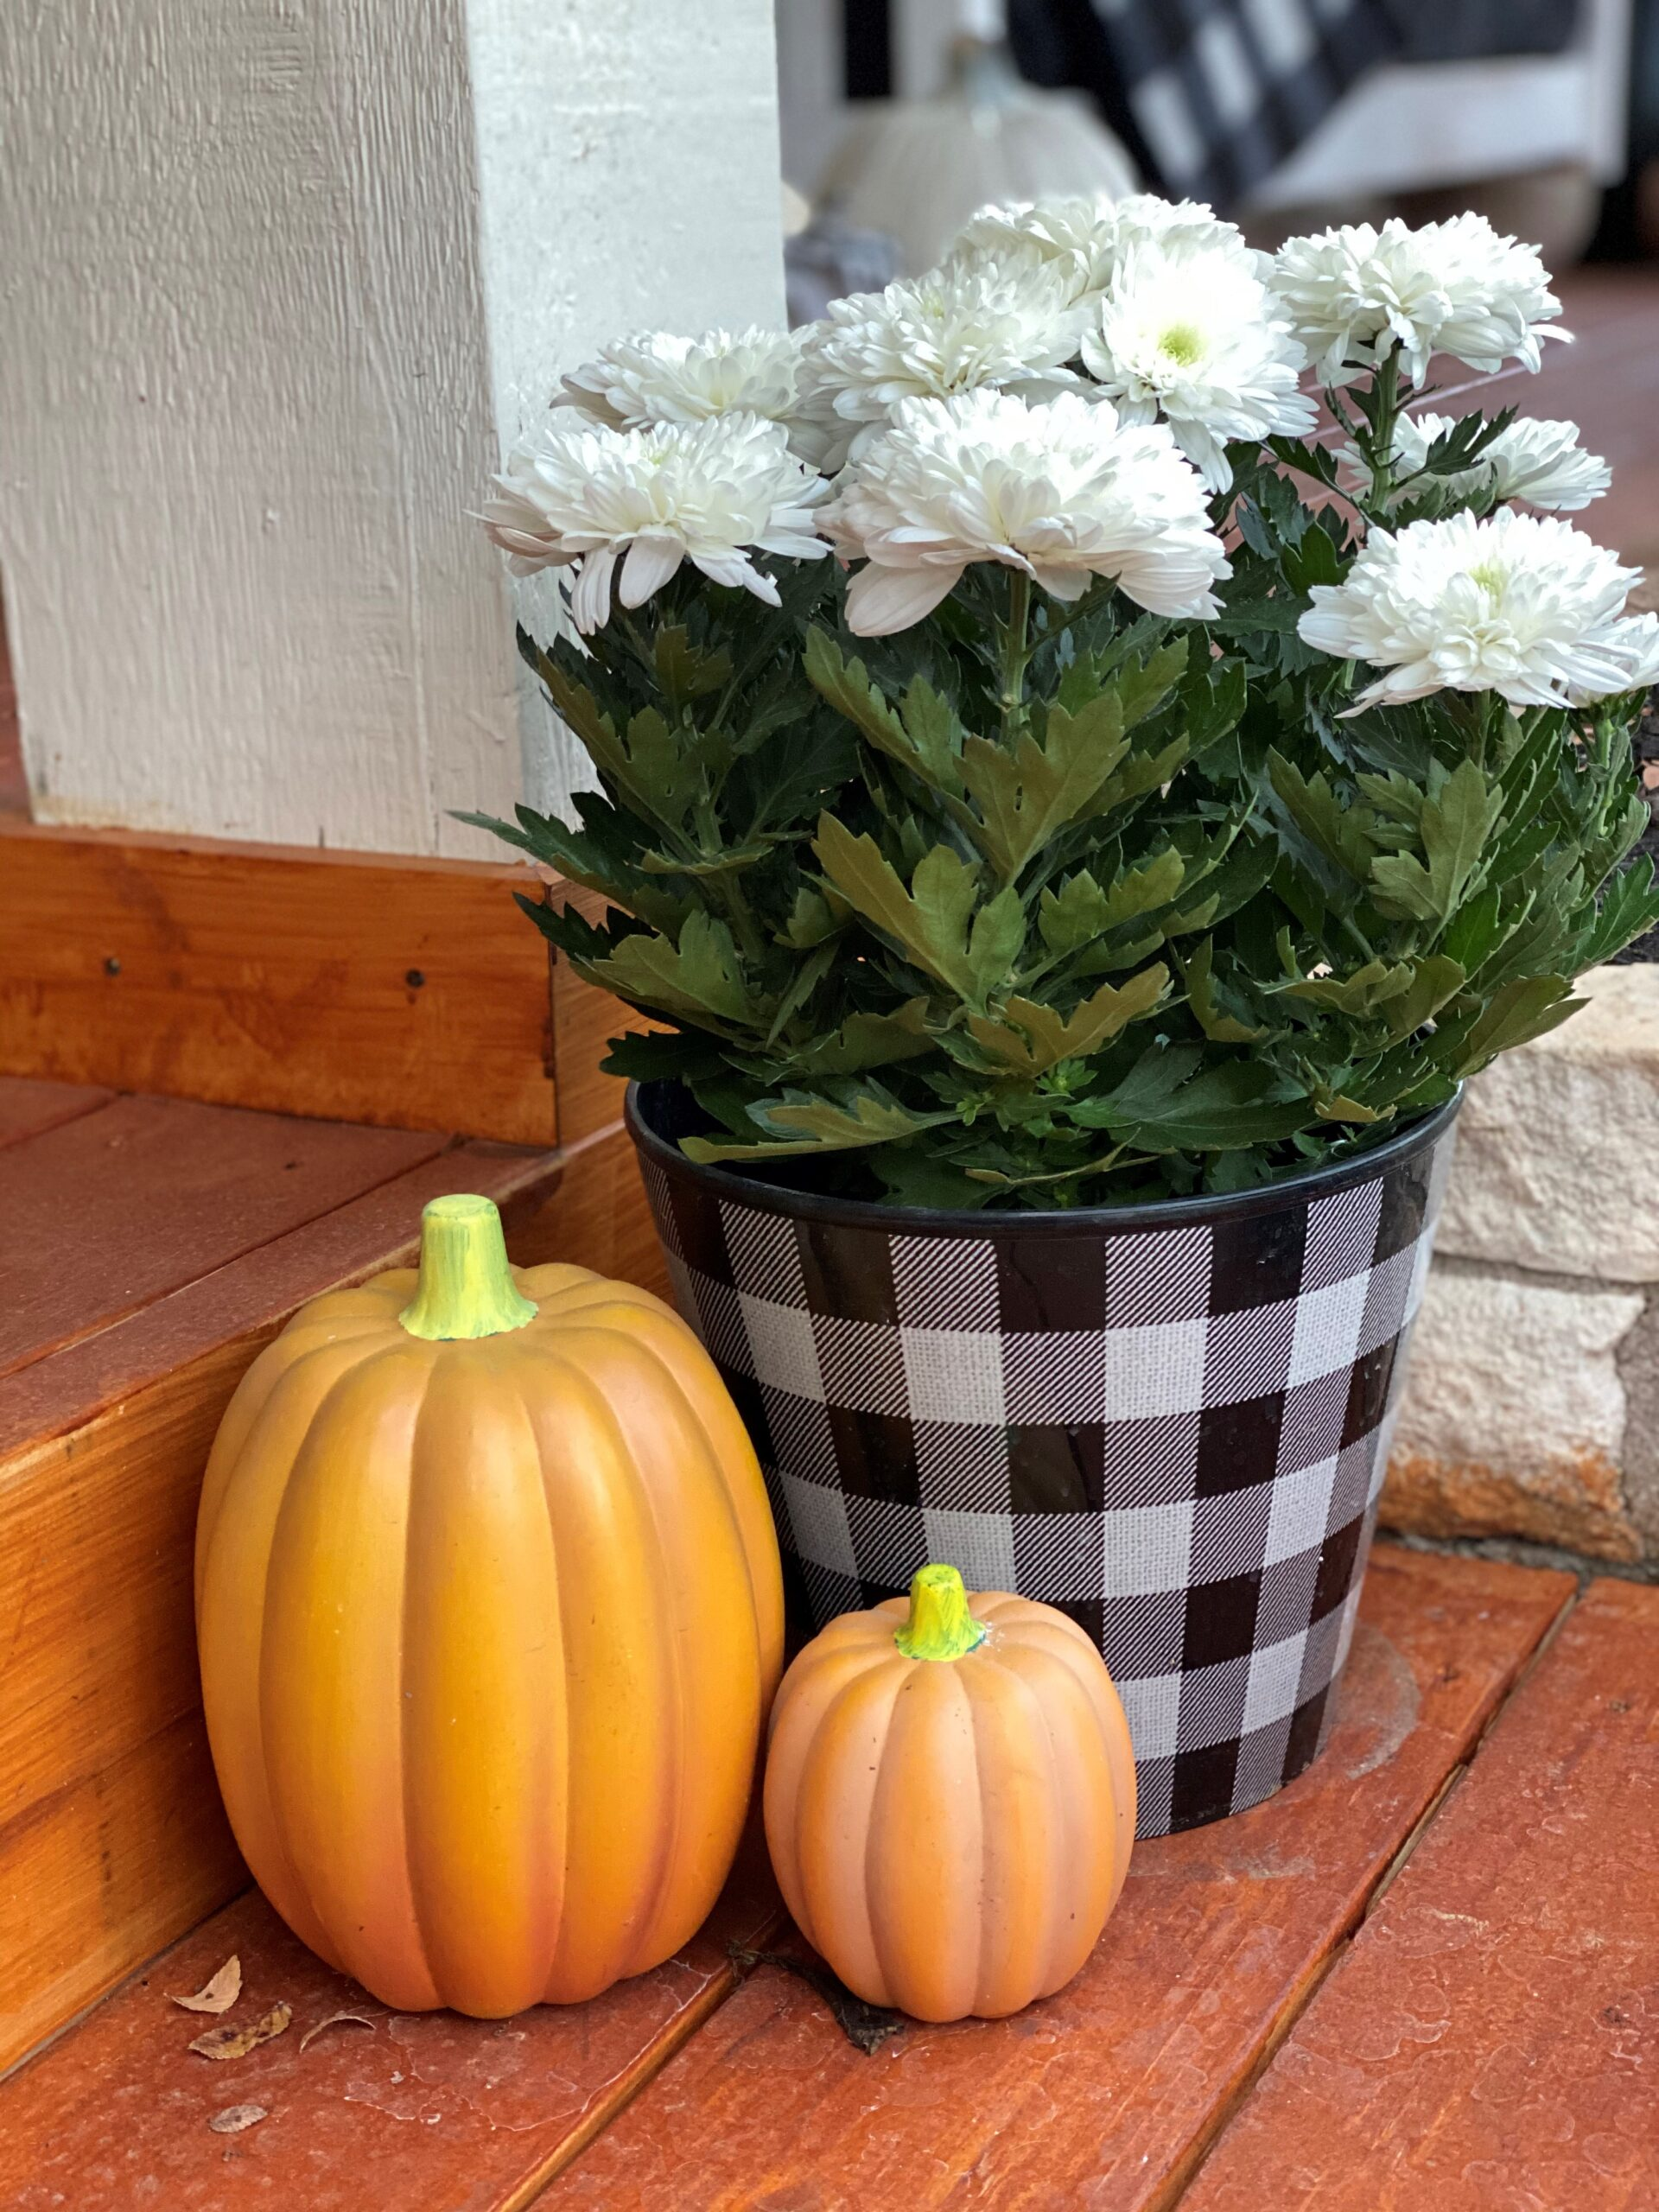 Halloween Front Porch Decorations, Vintage Rustic Front Porch, White Mums, Black and White Buffalo Check, Pumpkins